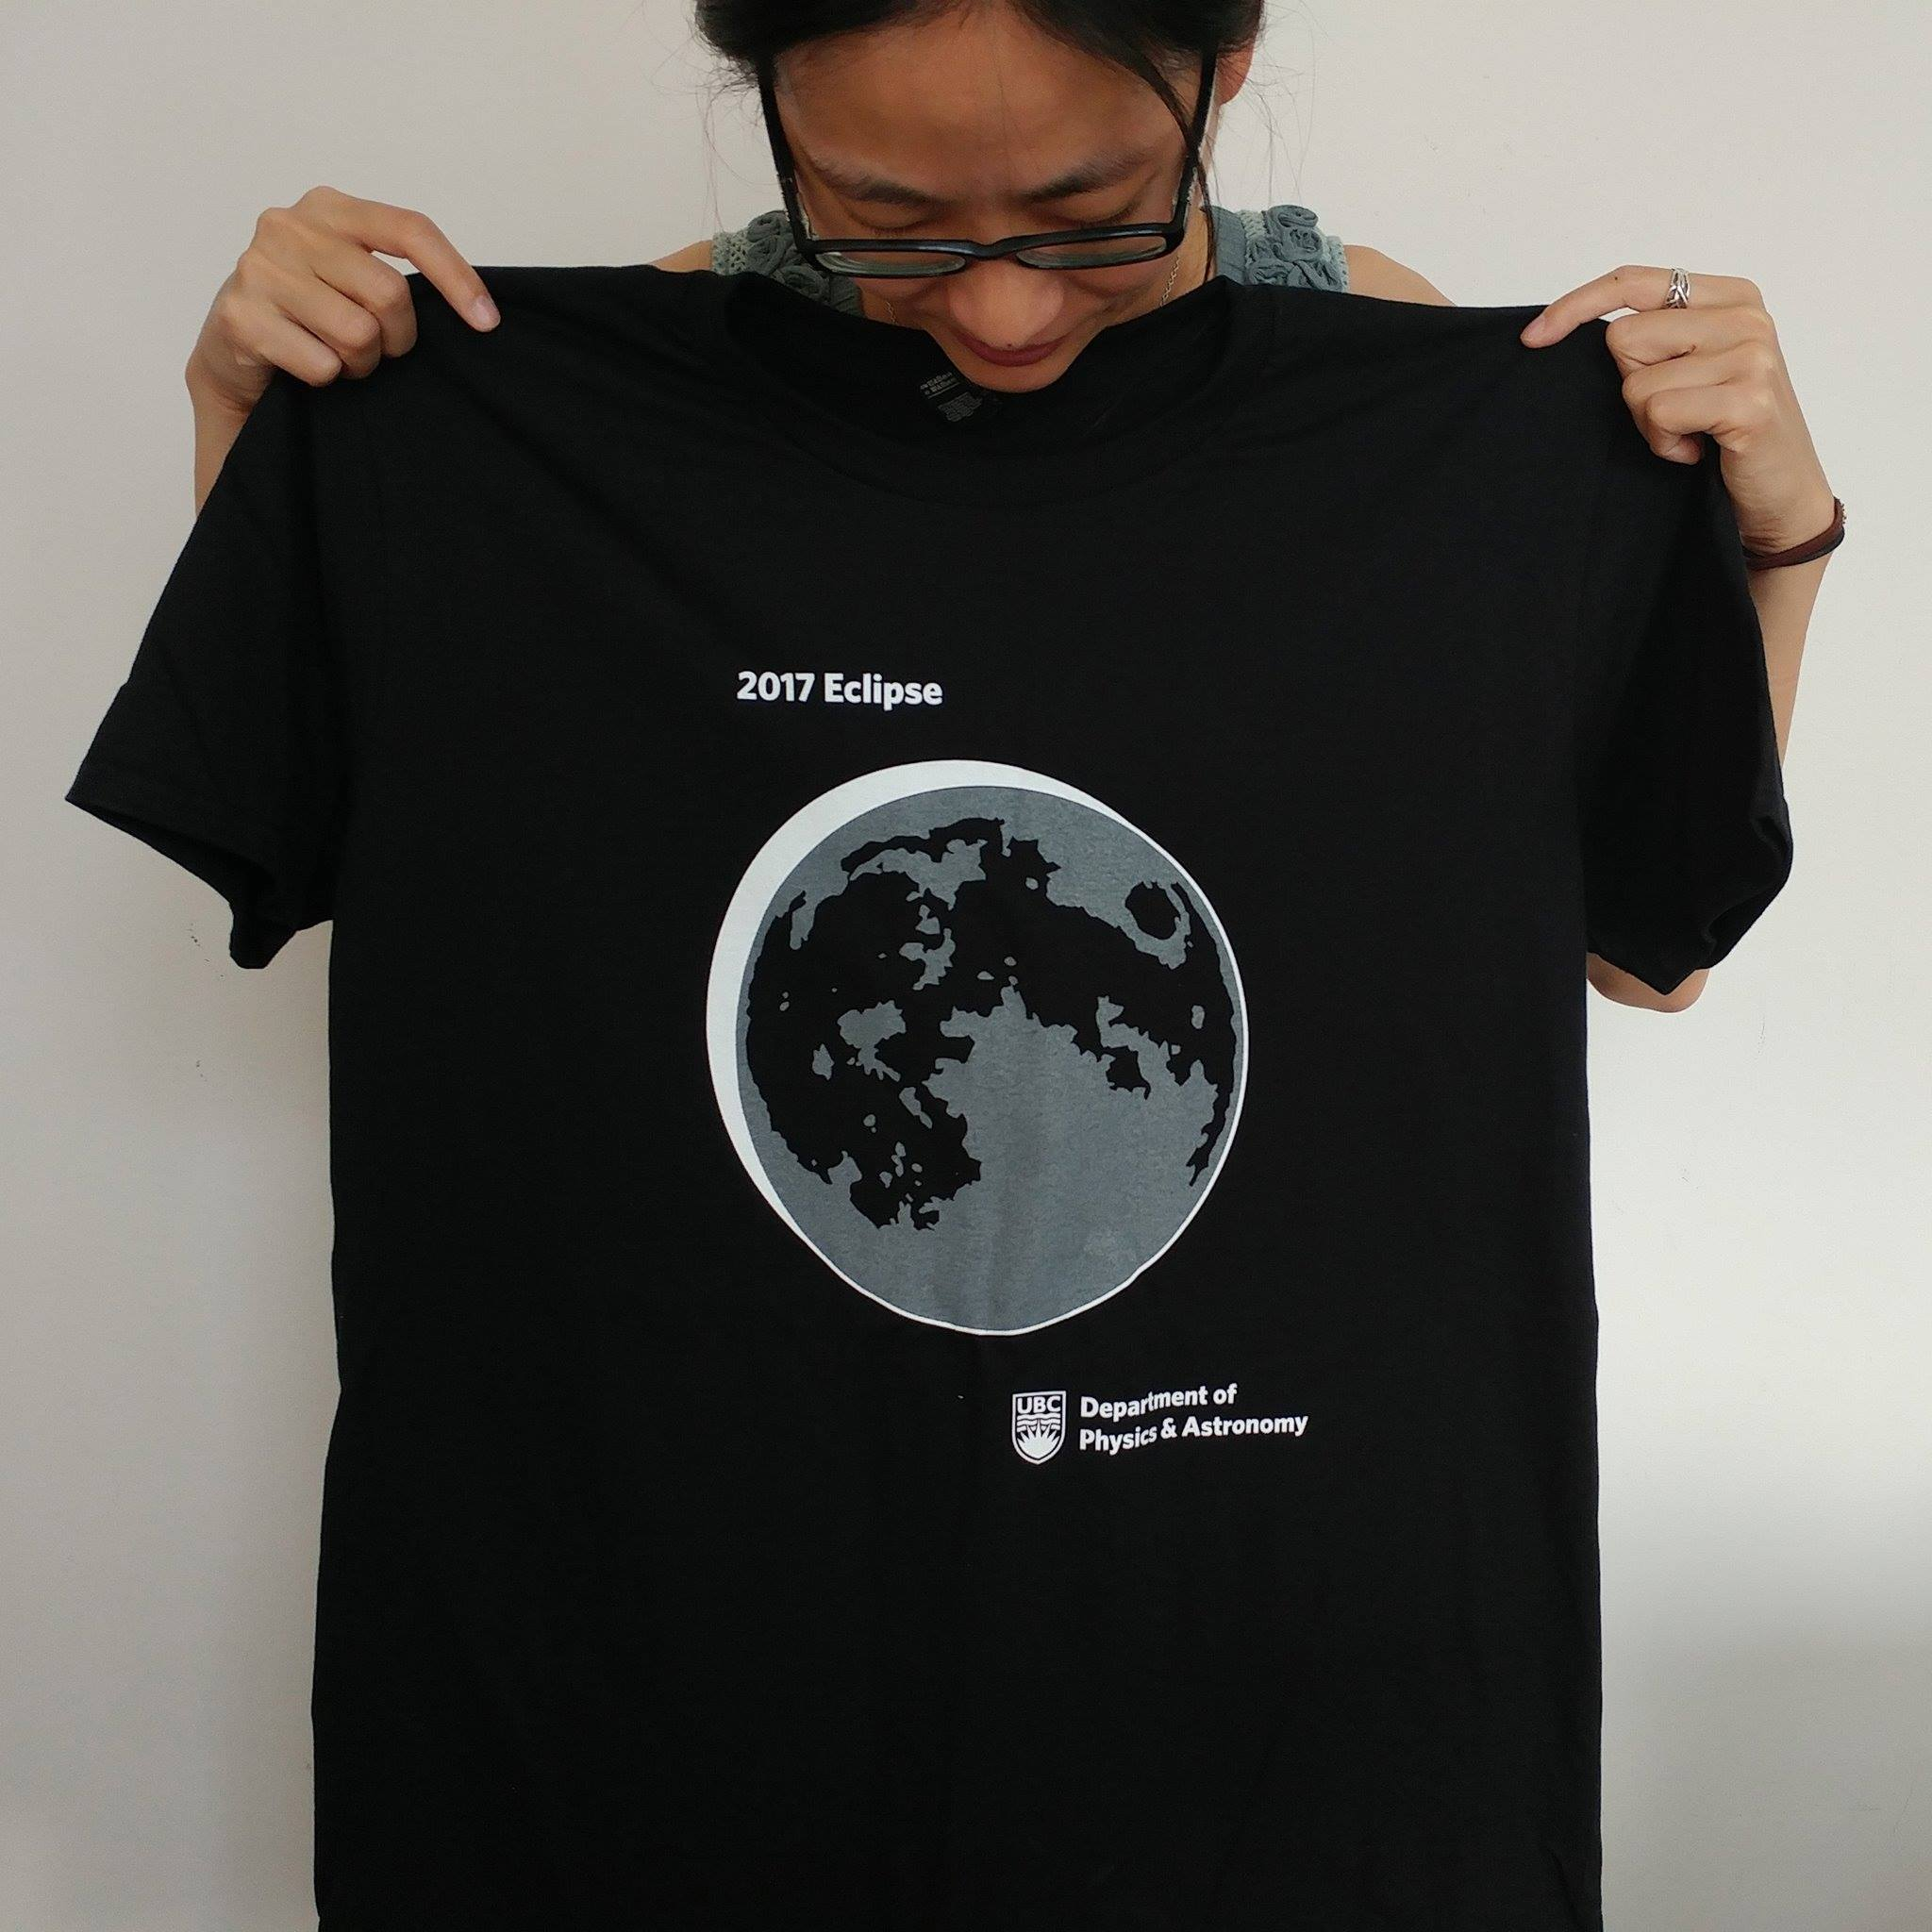 UBC Department of Physics and Astronomy made eclipse-themed shirts for their volunteers.